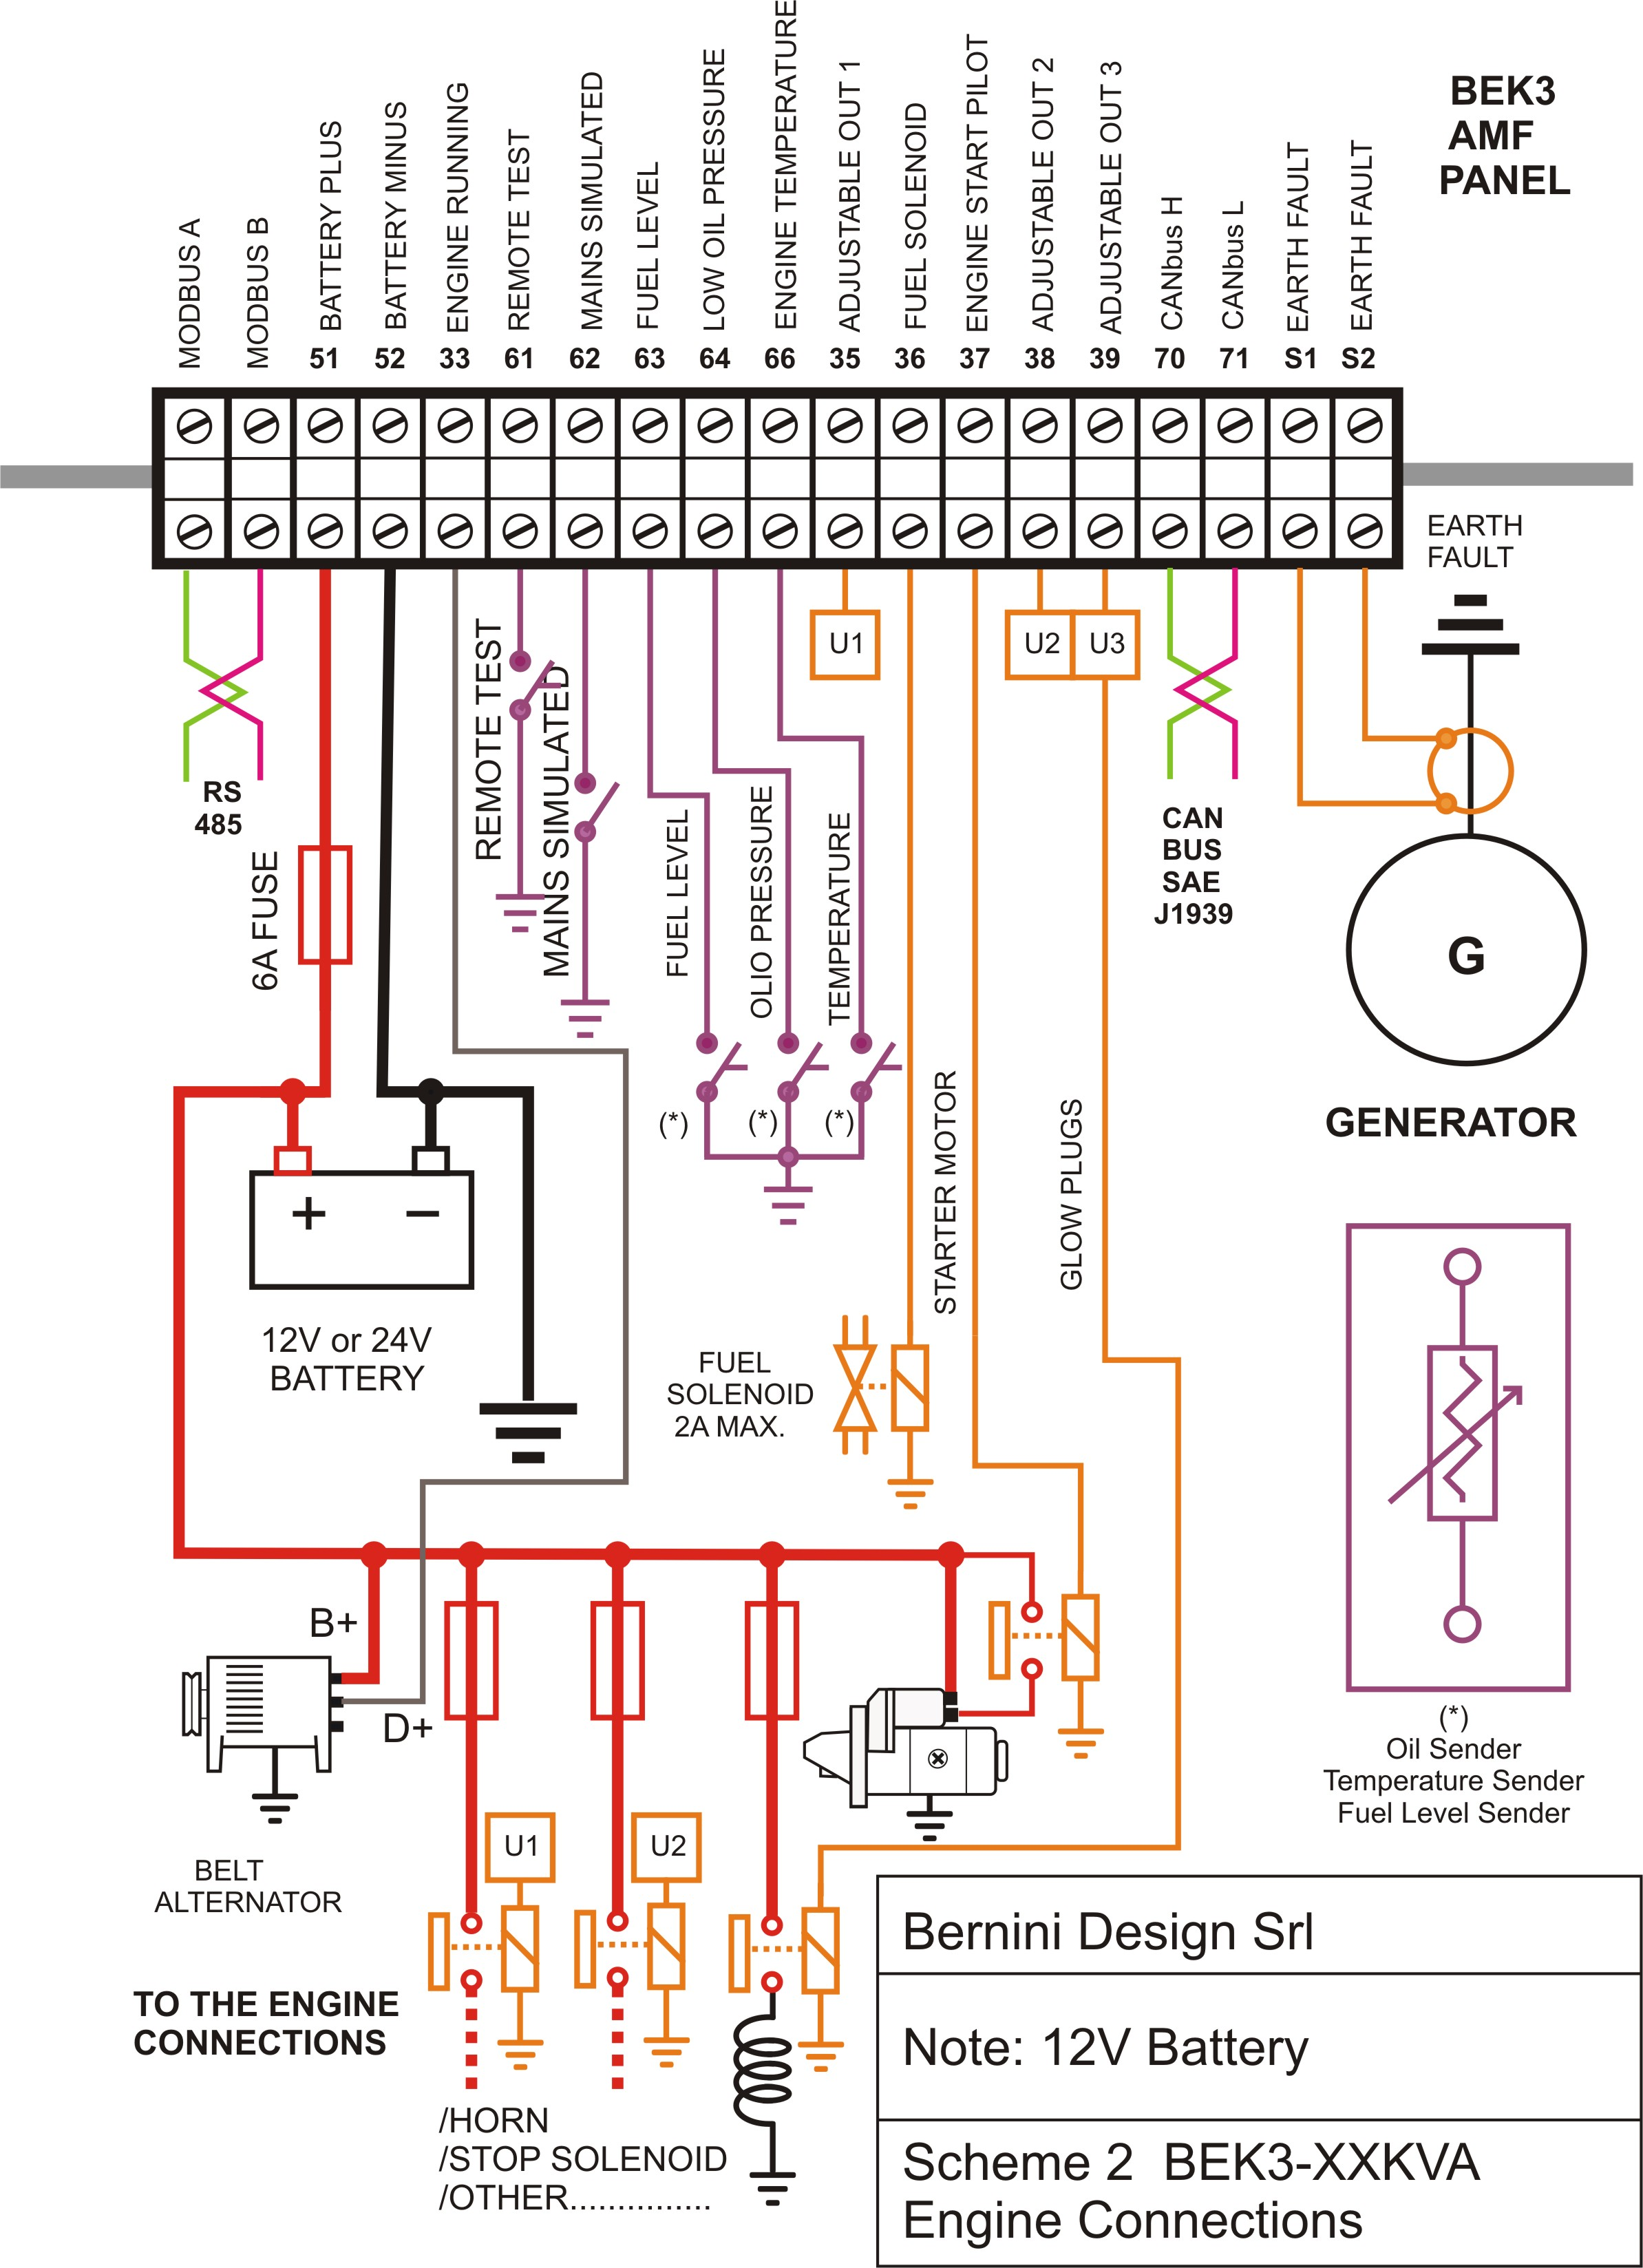 Diesel Generator Control Panel Wiring Diagram Engine Connections1 auto mains failure control panel genset controller controller wire diagram for 3246e2 lift at fashall.co